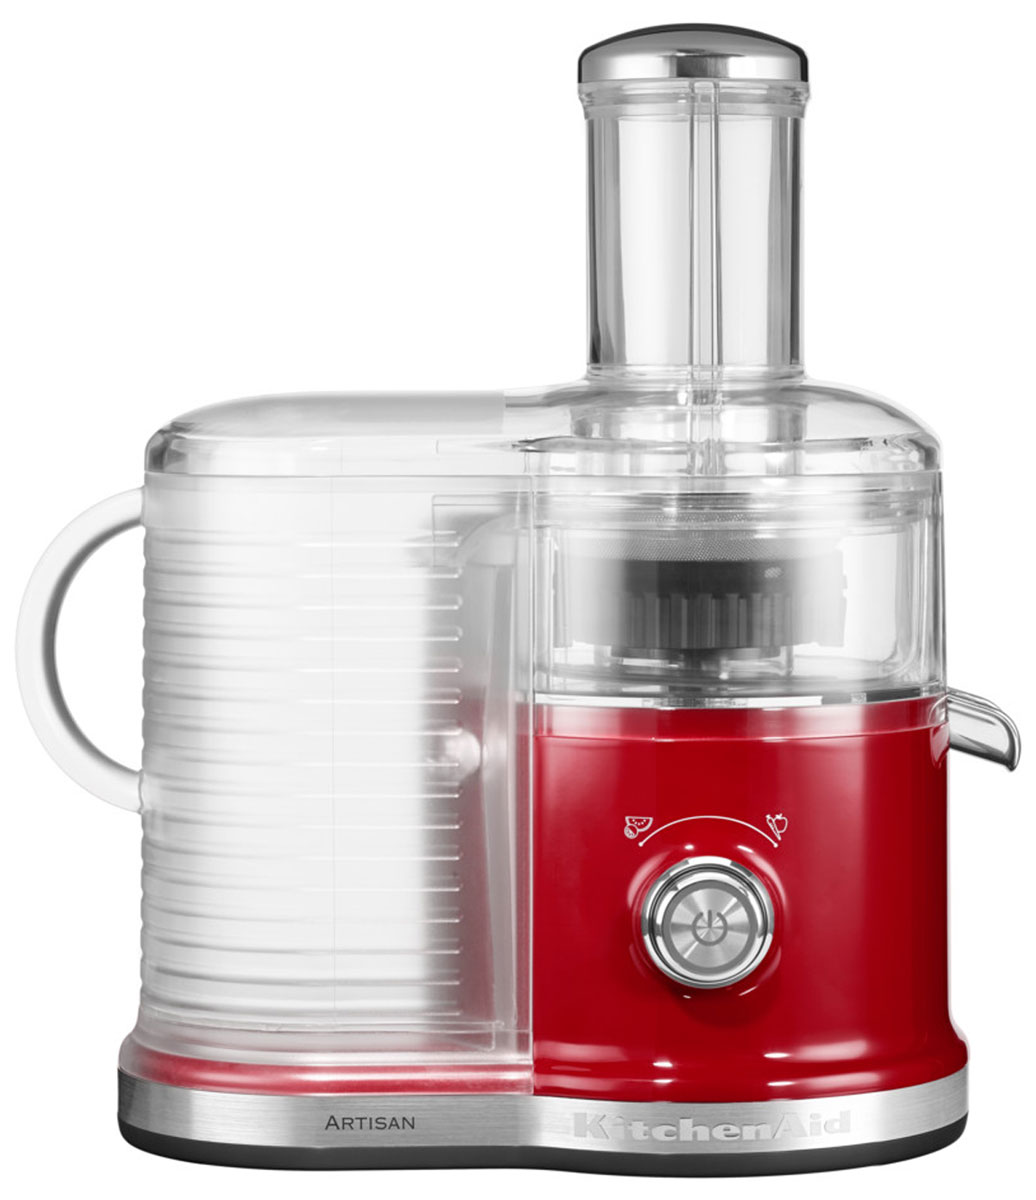 KitchenAid Artisan 5KVJ0333, Red соковыжималка 120 200 1155036